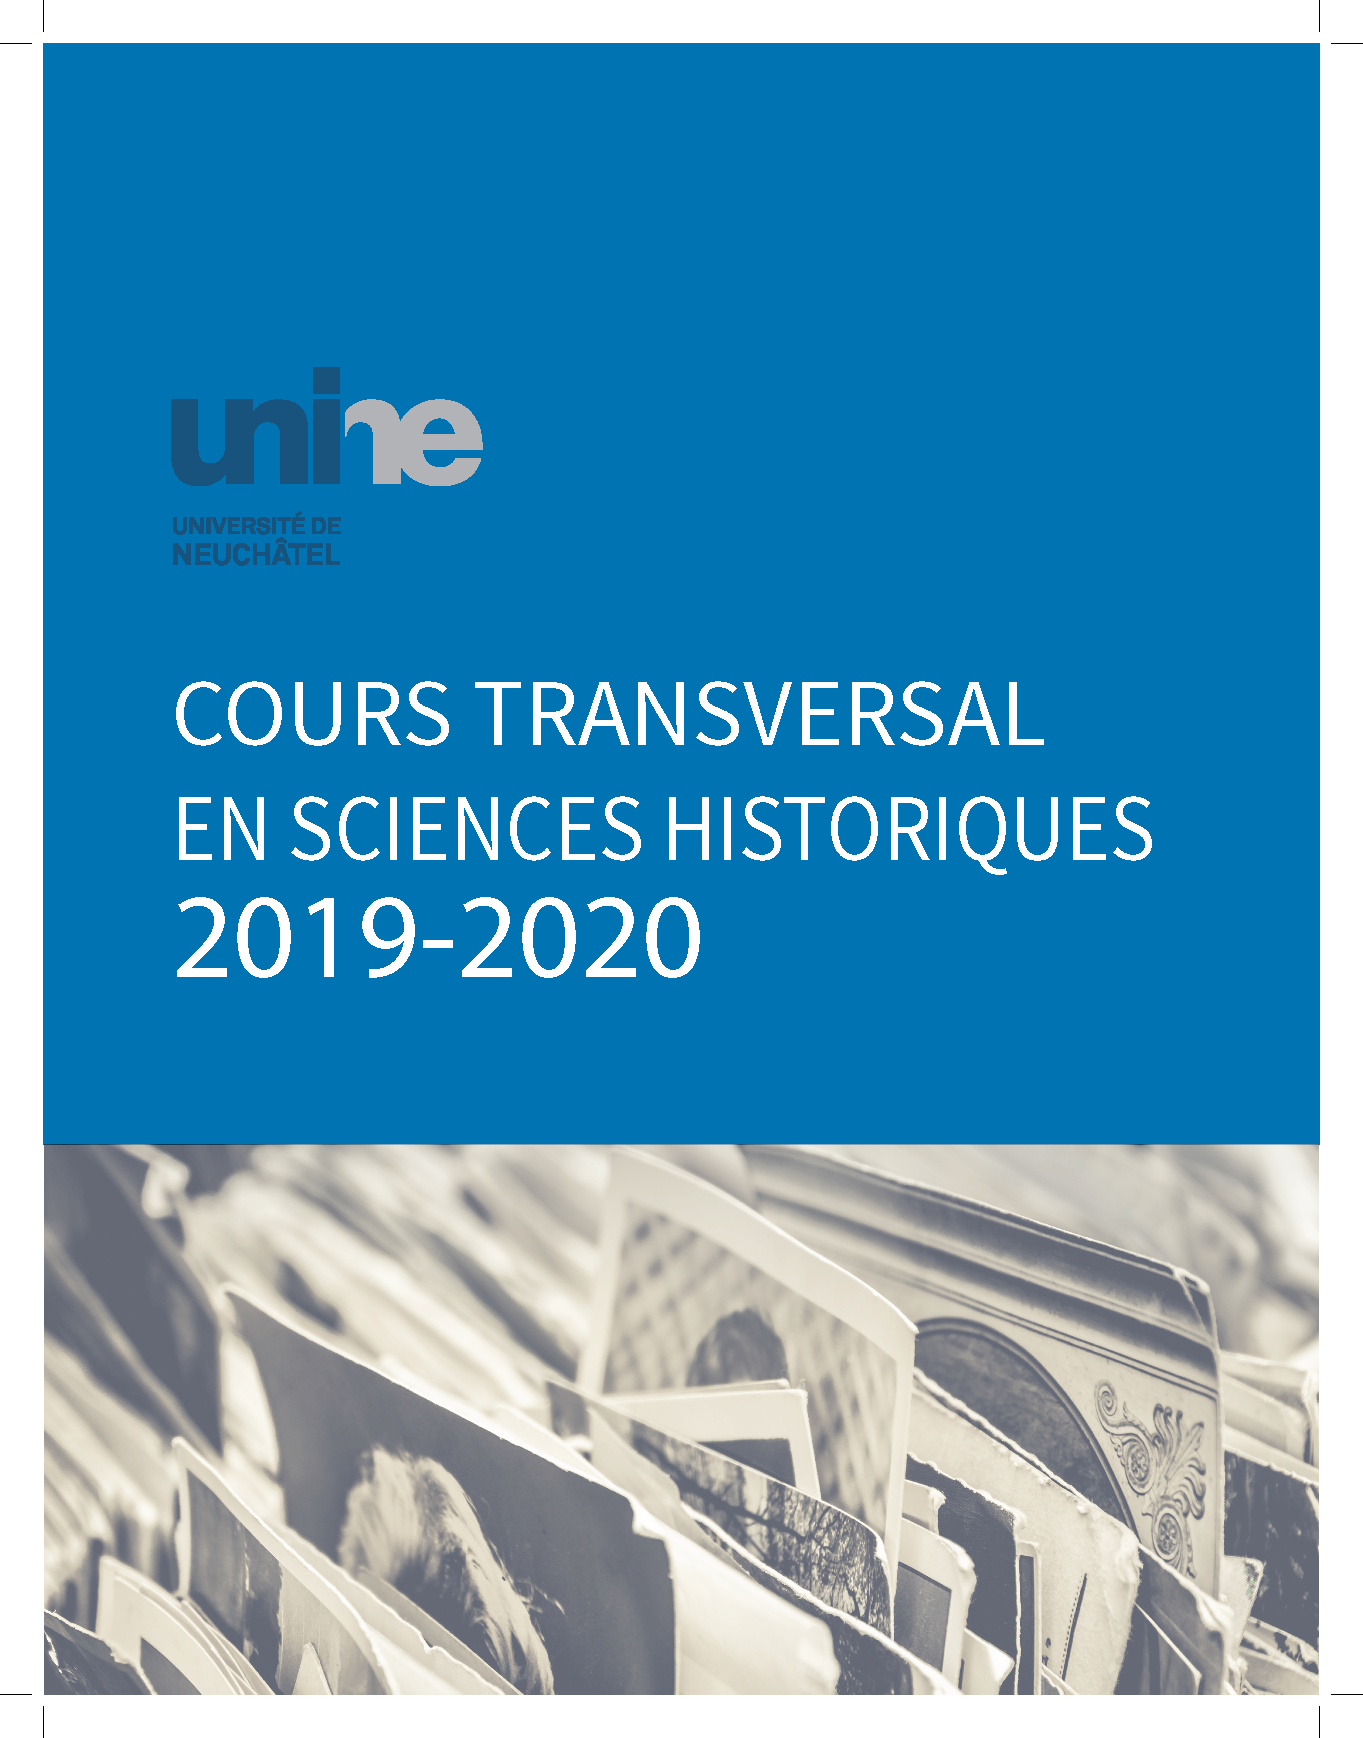 couvertue brochure transversal.png